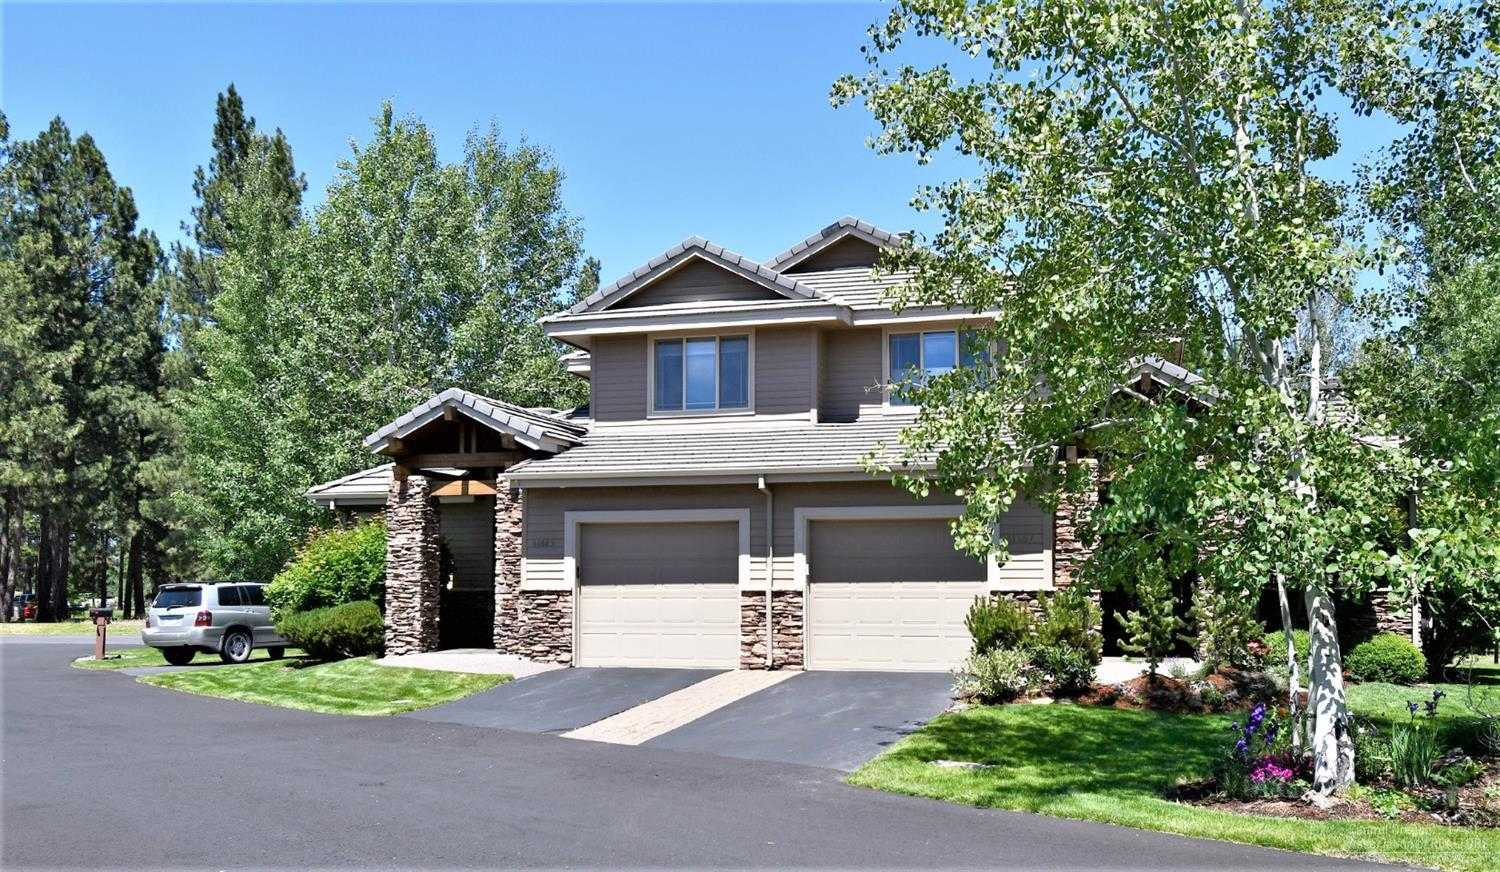 $420,000 - 3Br/3Ba -  for Sale in Bend